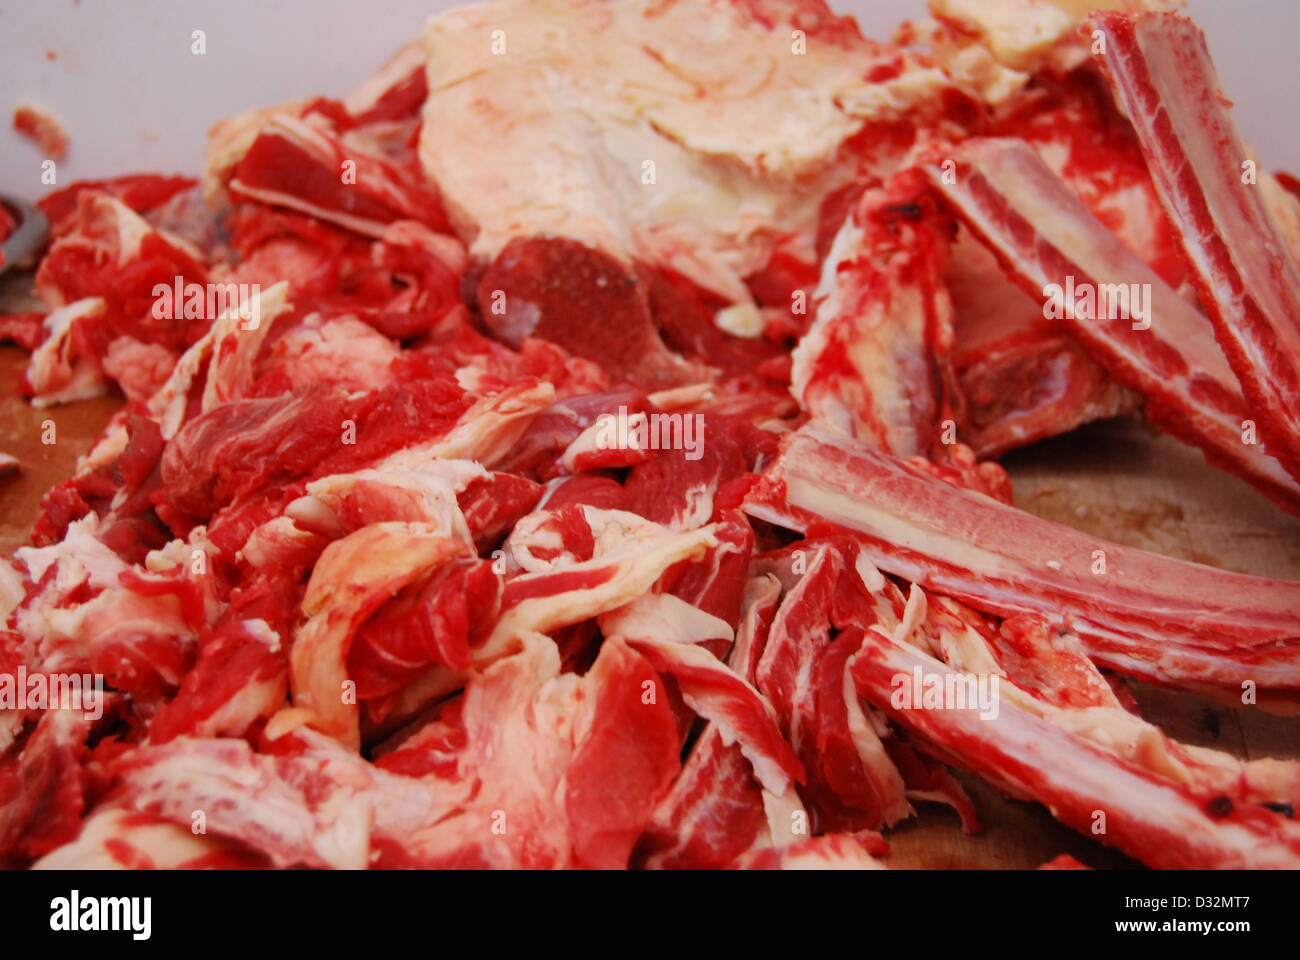 Meat With Fat